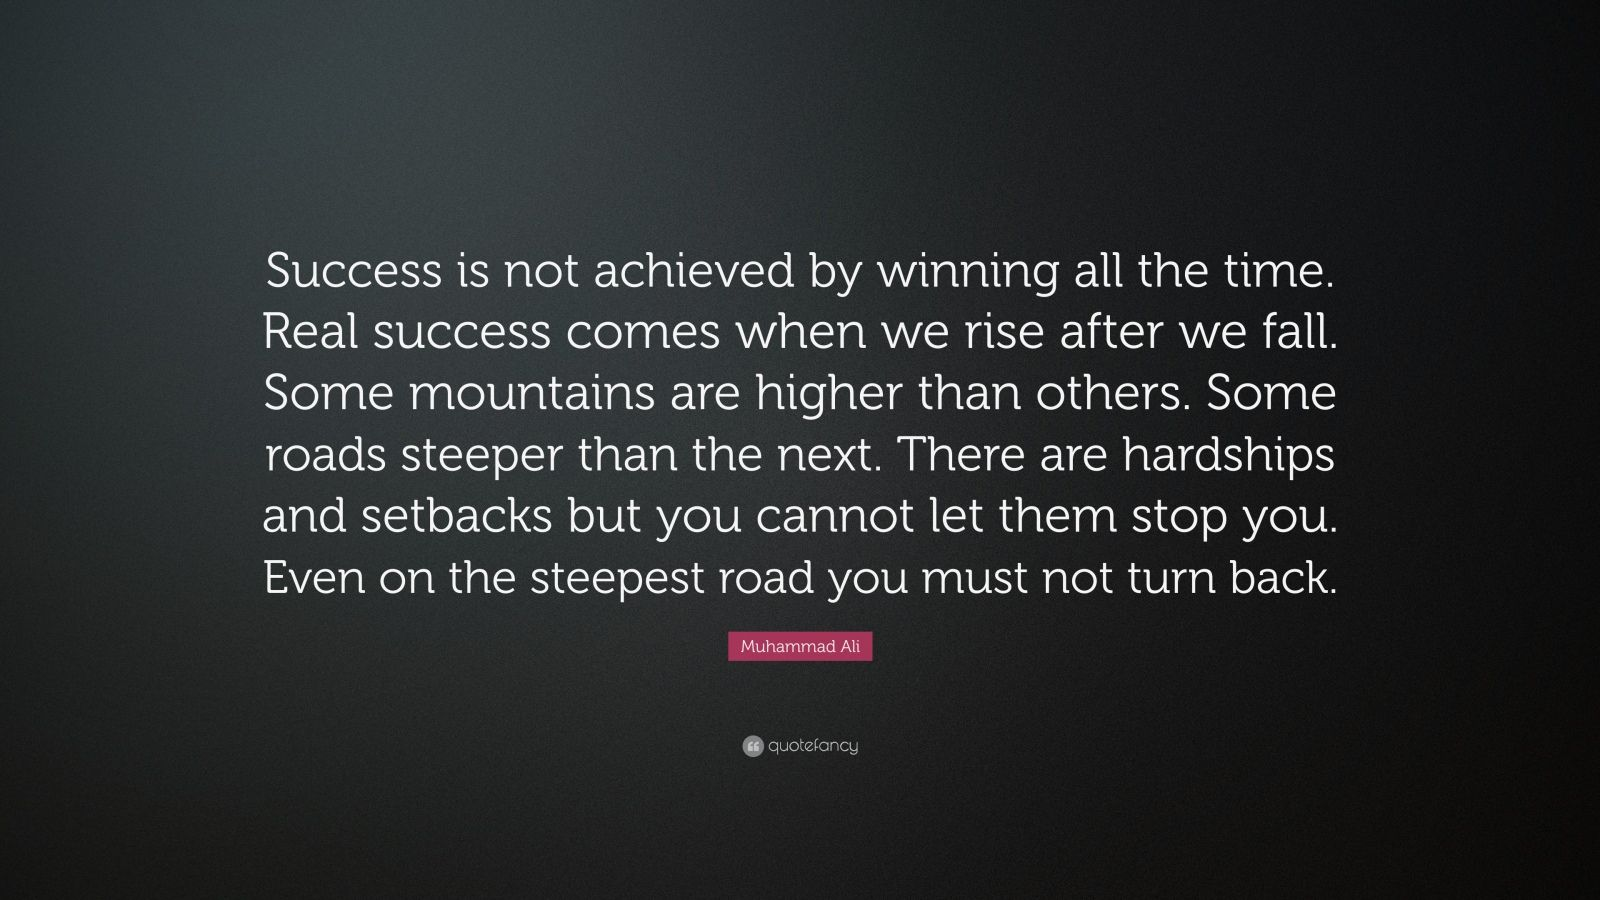 "Muhammad Ali Quote: ""Success is not achieved by winning all the time. Real success comes when we rise after we fall. Some mountains are higher than others. Some roads steeper than the next. There are hardships and setbacks but you cannot let them stop you. Even on the steepest road you must not turn back."""